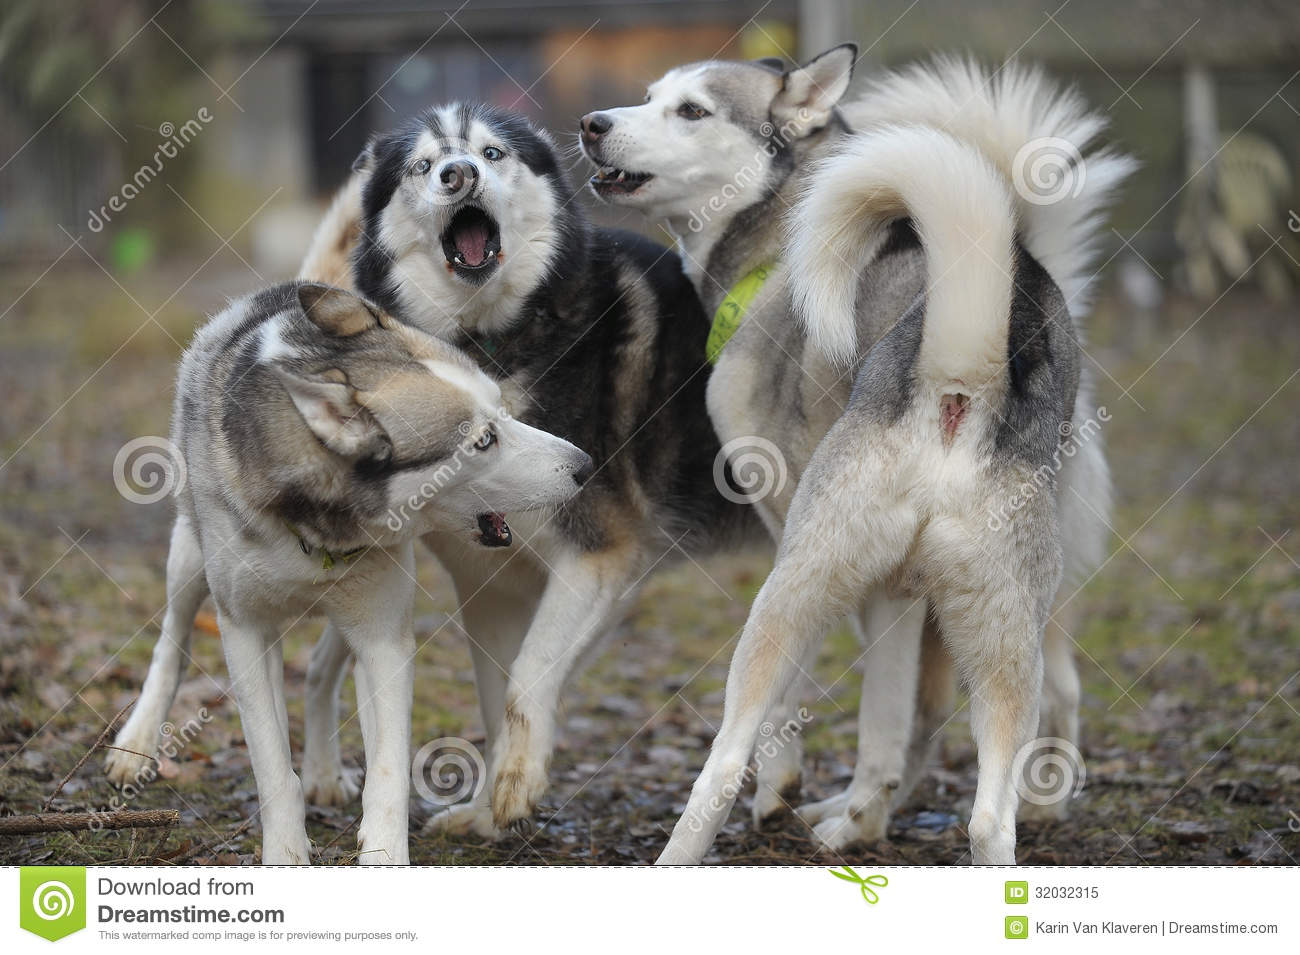 Videos Of Dogs Playing And Barking